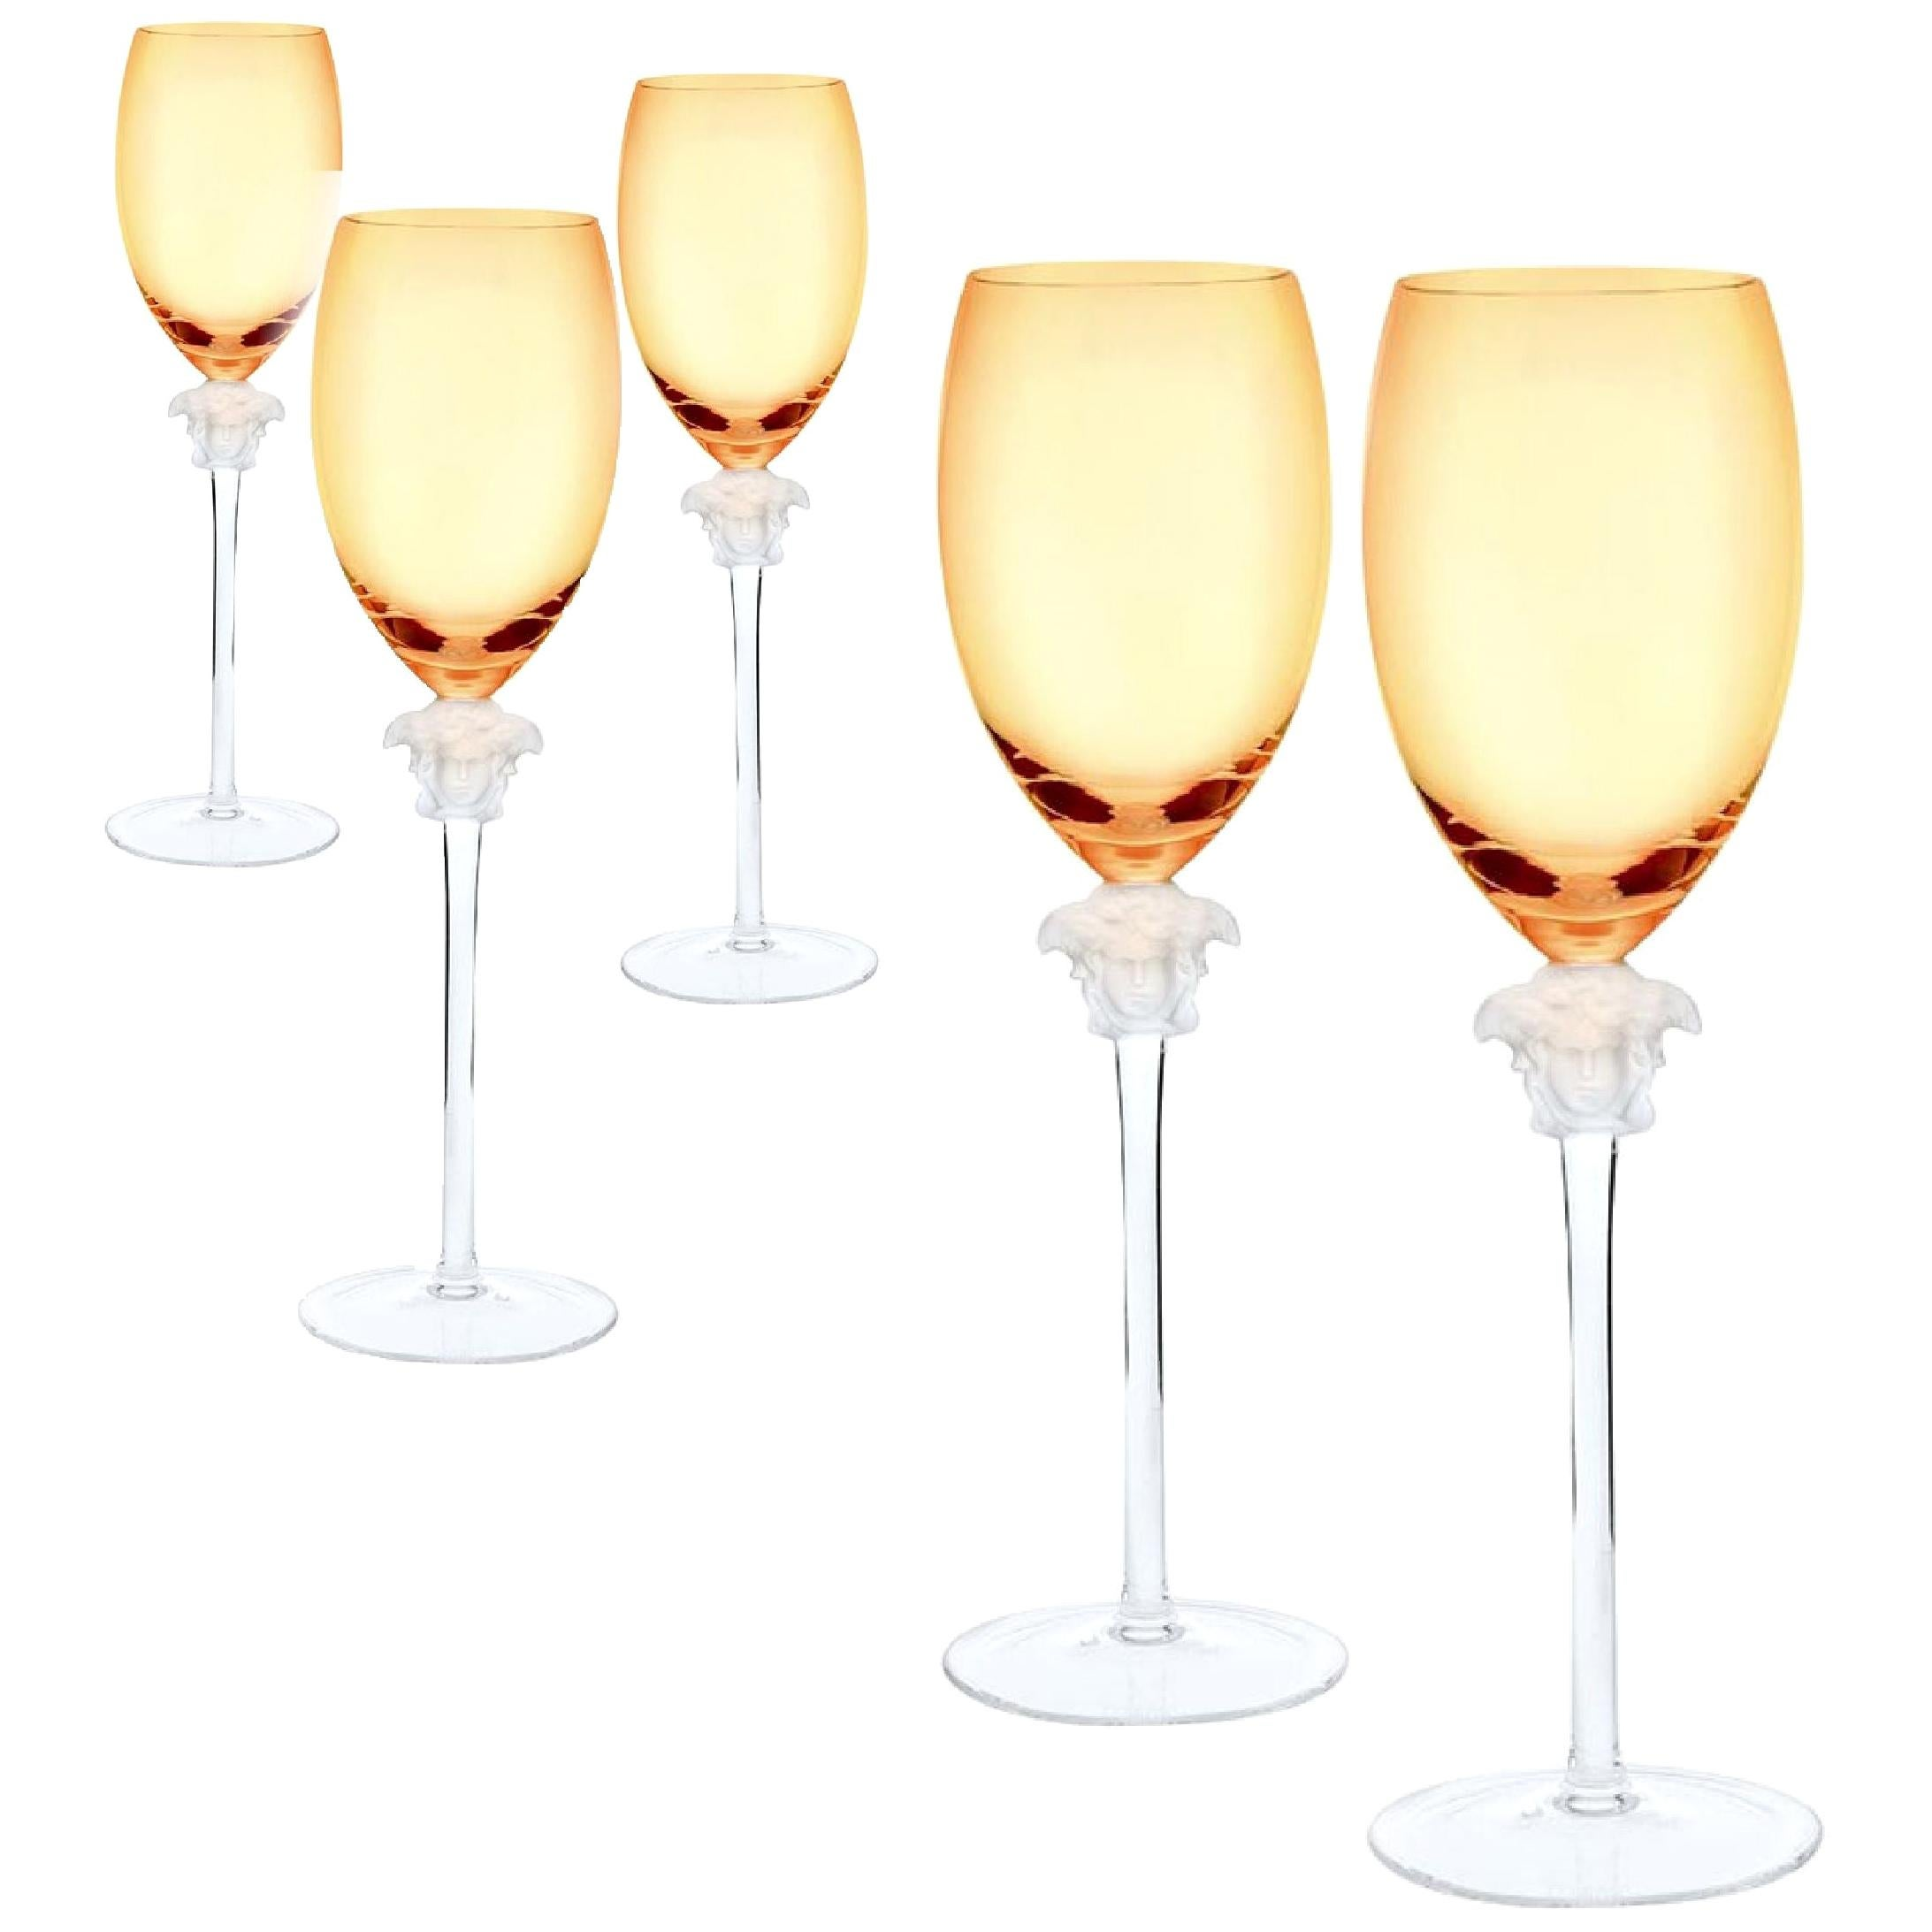 Rosenthal Versace Medusa Lumiere Amber Crystal Wine Glass Set of Five, White